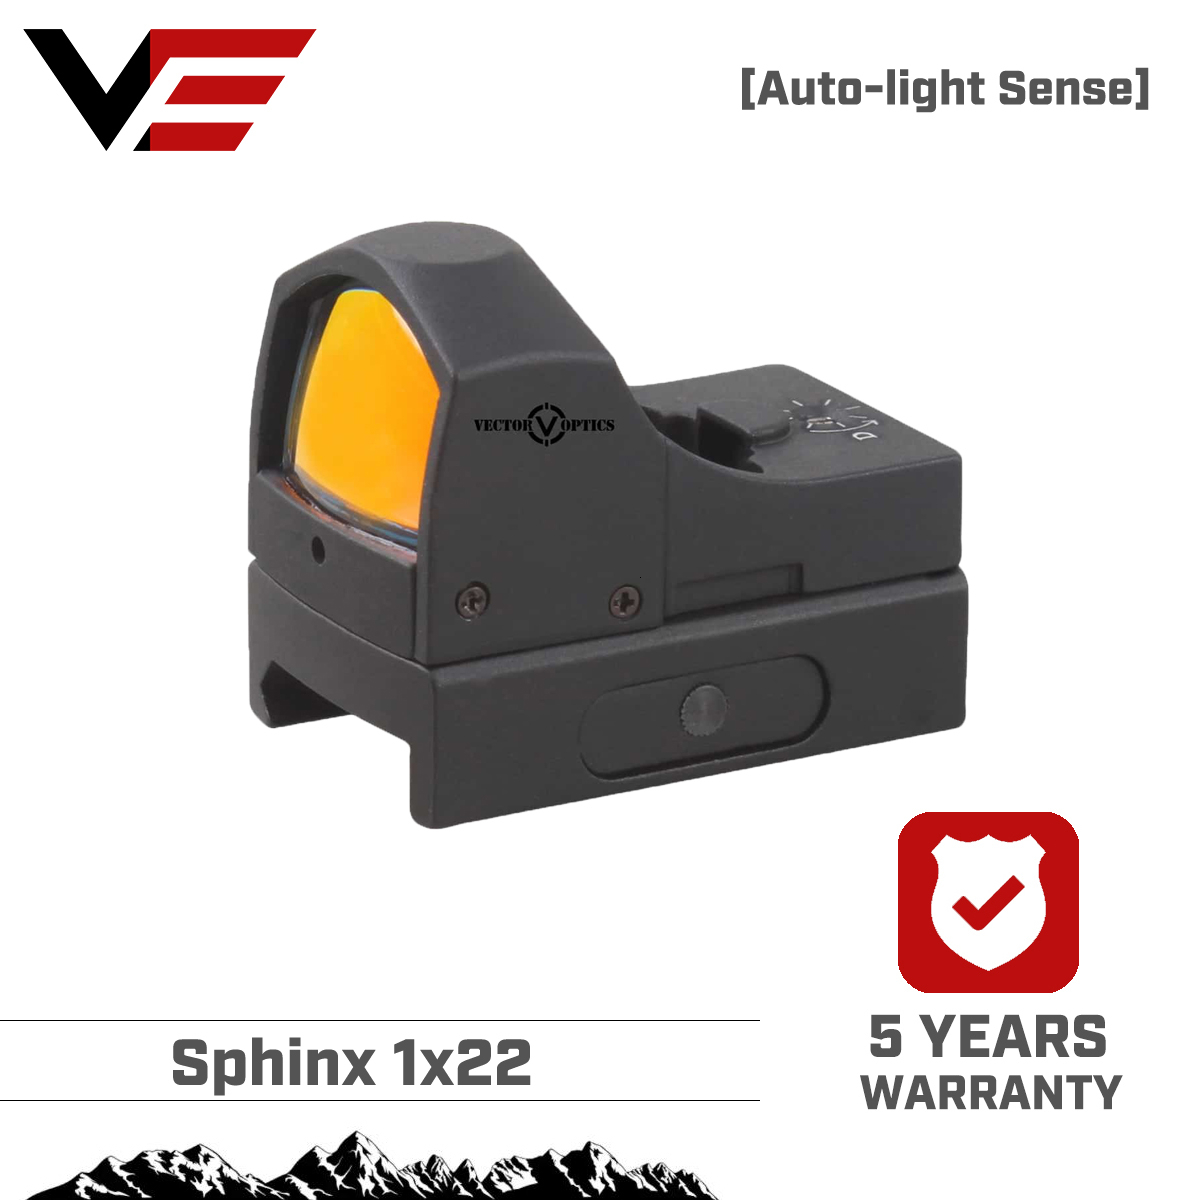 Vector Optics Sphinx 1x22 Auto Brightness Compact Red Dot Sight Doctor 3 MOA 9mm Pistol 12ga Shotgun Reflex Sight